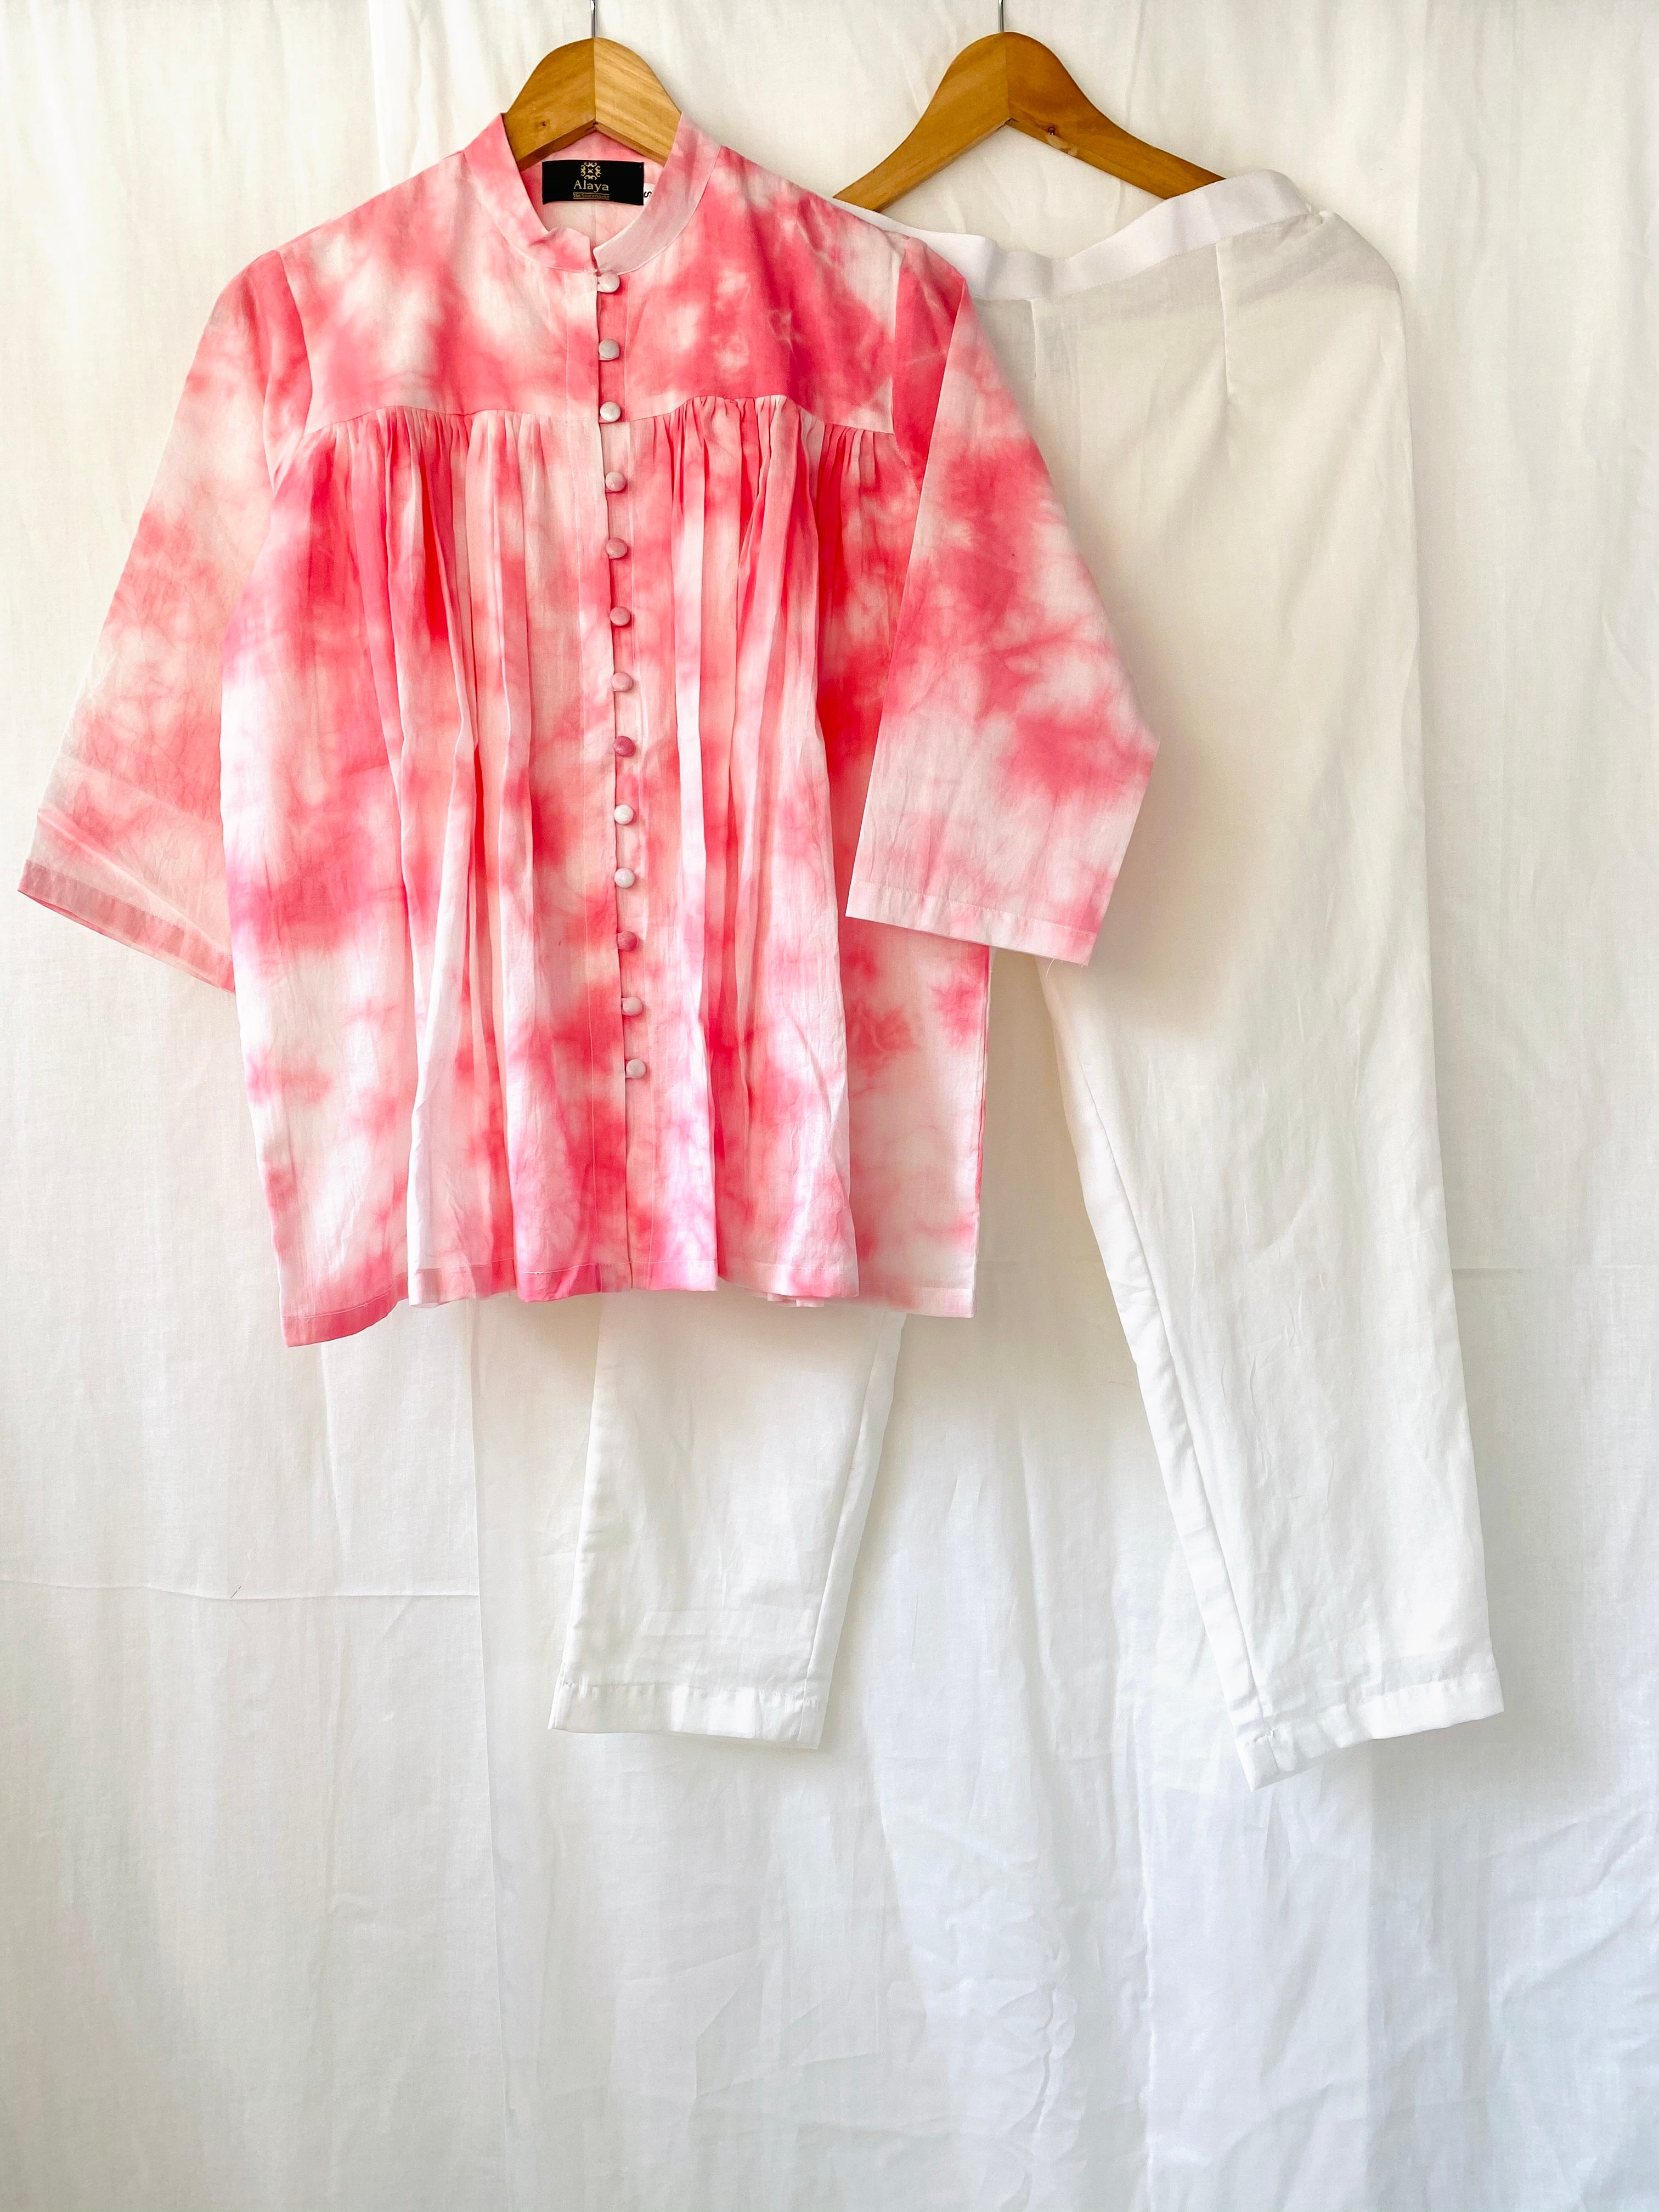 Pink Tie Dye Top with solid White Pants